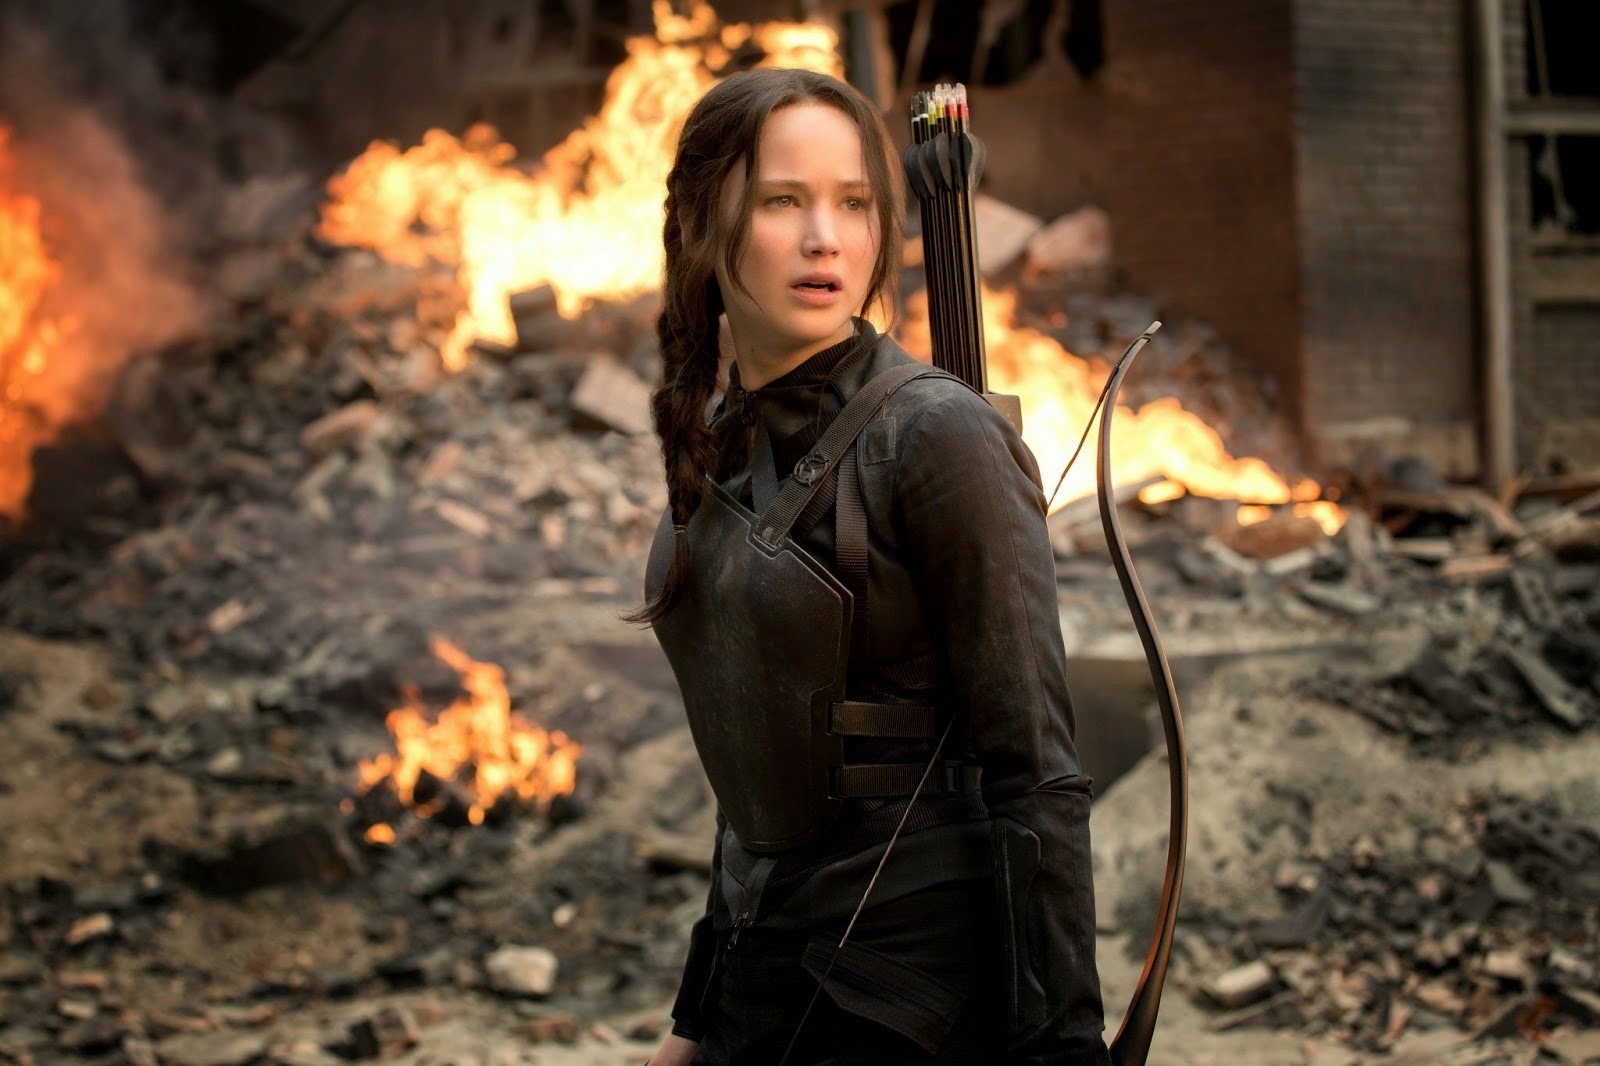 AUDIO: Listen to Jennifer Lawrence sing 'The Hanging Tree' from 'The Hunger Games: Mockingjay Part 1' Score (SPOILER!)